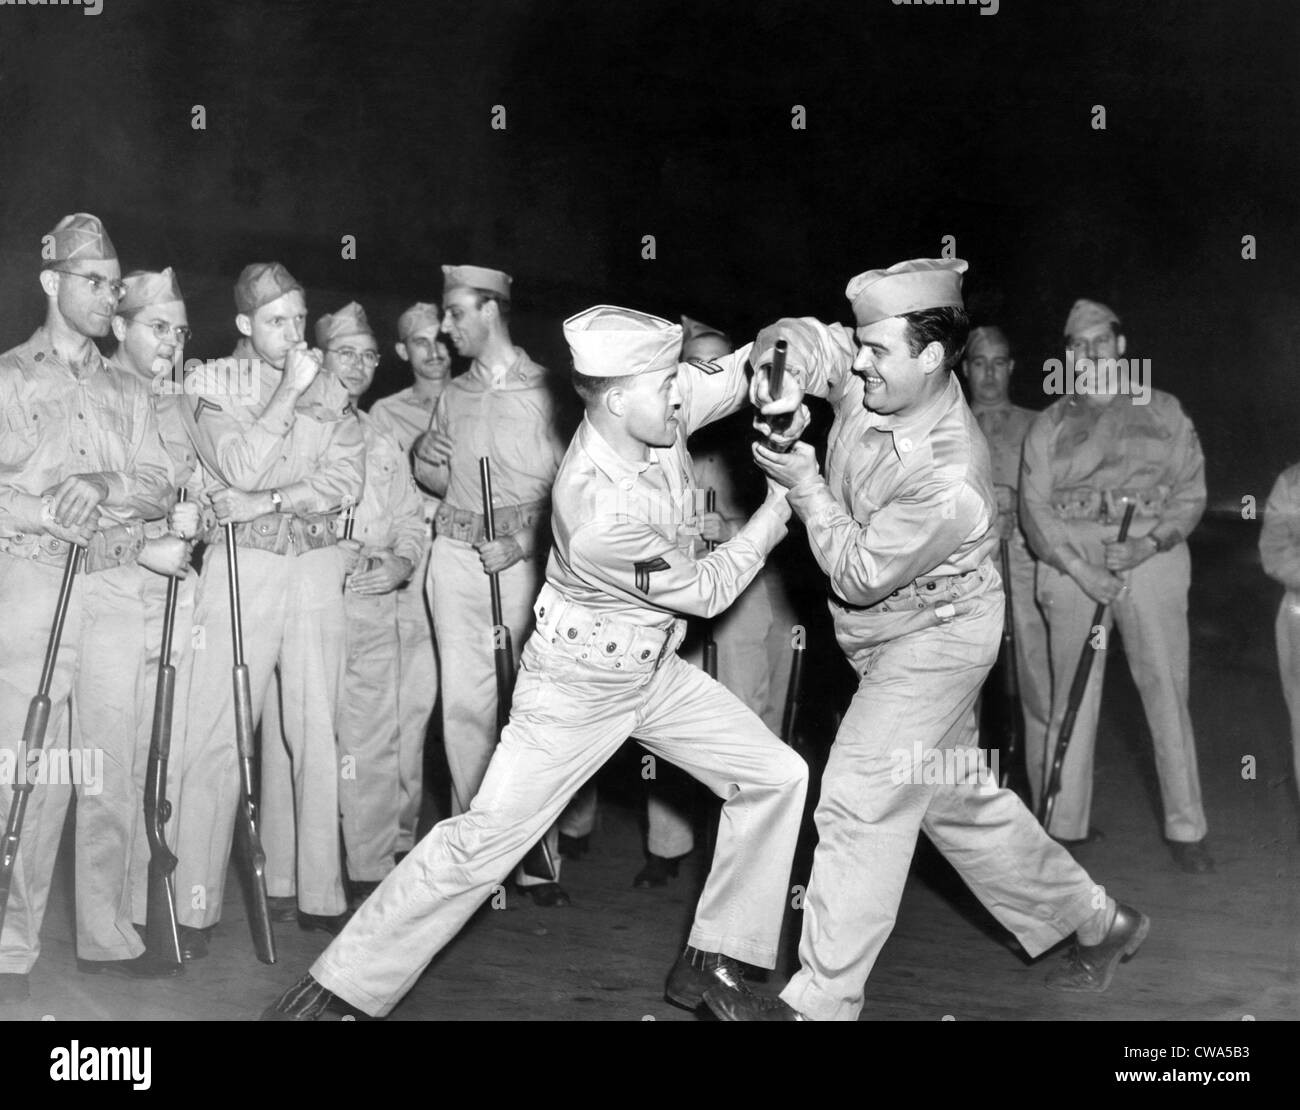 U.S. Army training, 1940's.. Courtesy: CSU Archives / Everett Collection - Stock Image